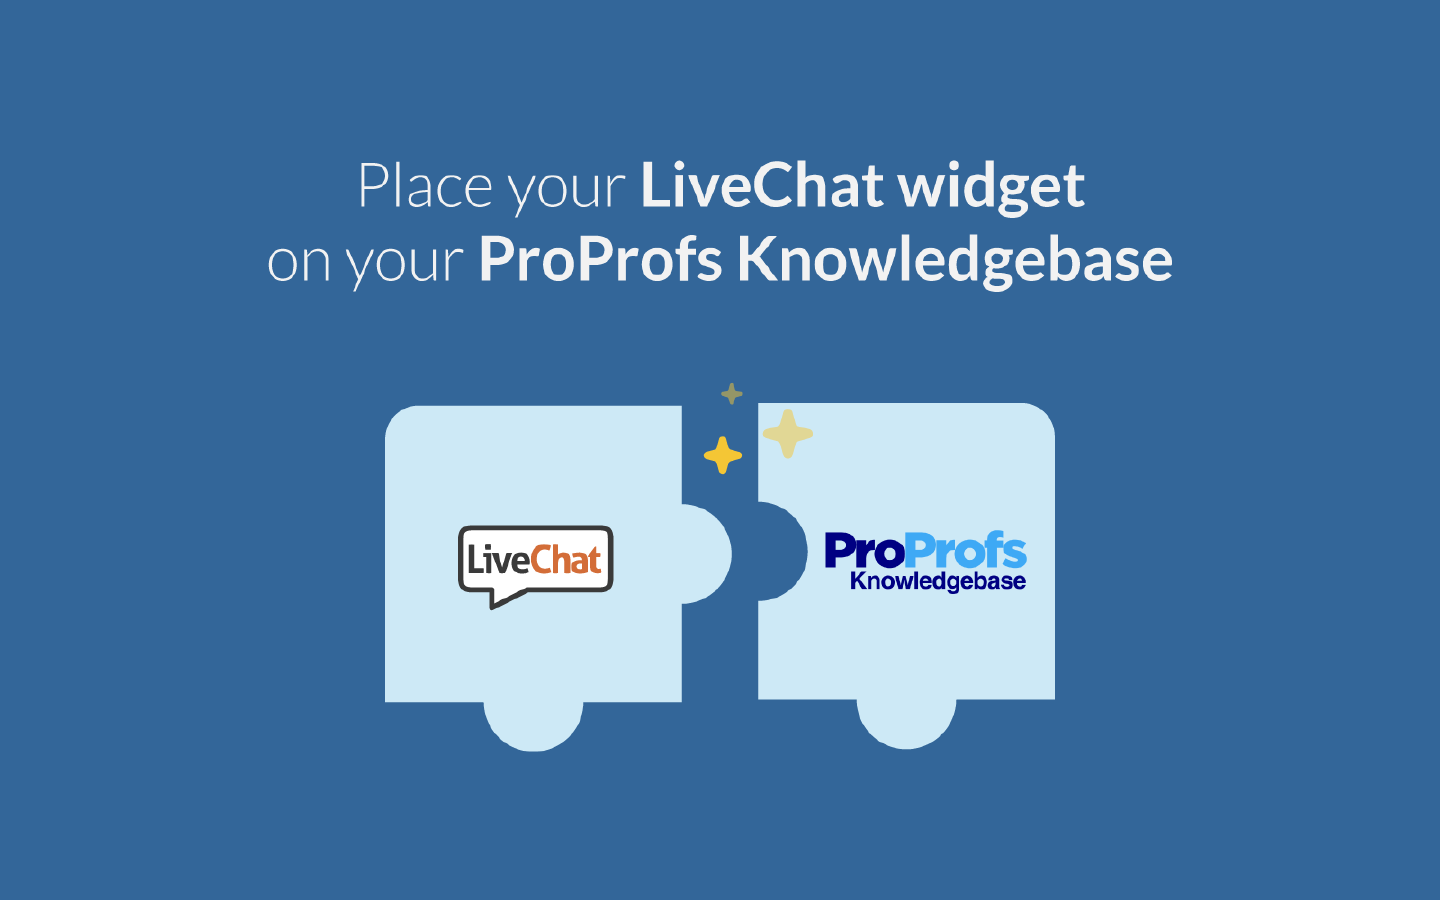 ProProfs integrates with LiveChat